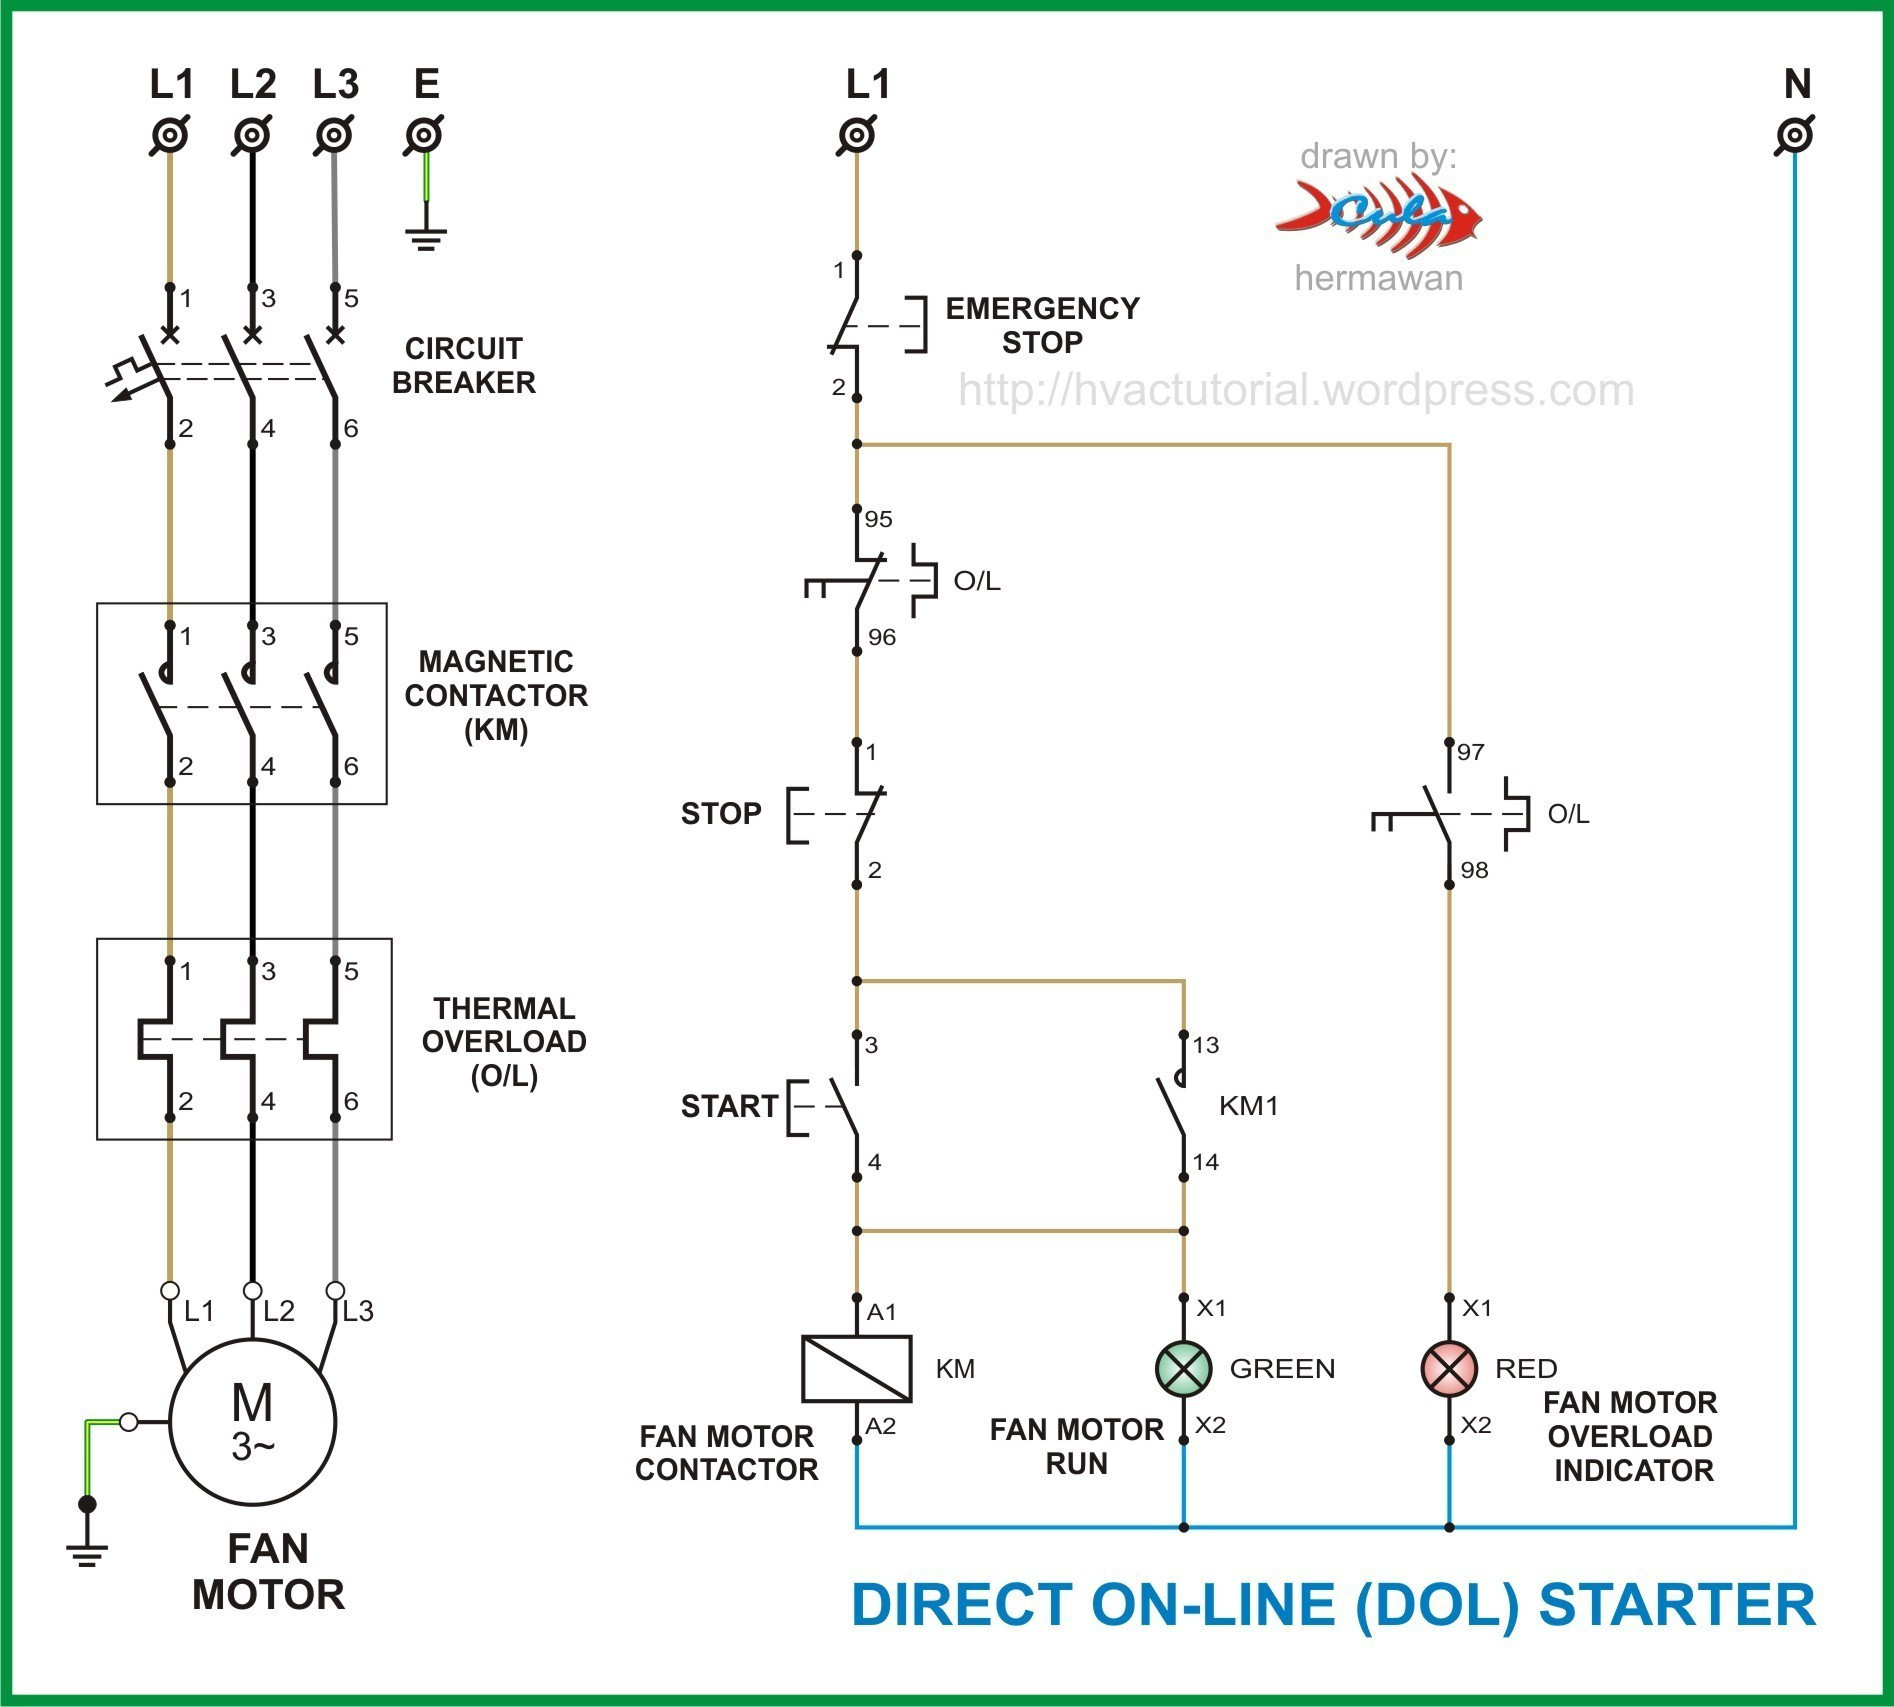 3 Phase Electric Motor Starter Wiring Diagram from 2020cadillac.com